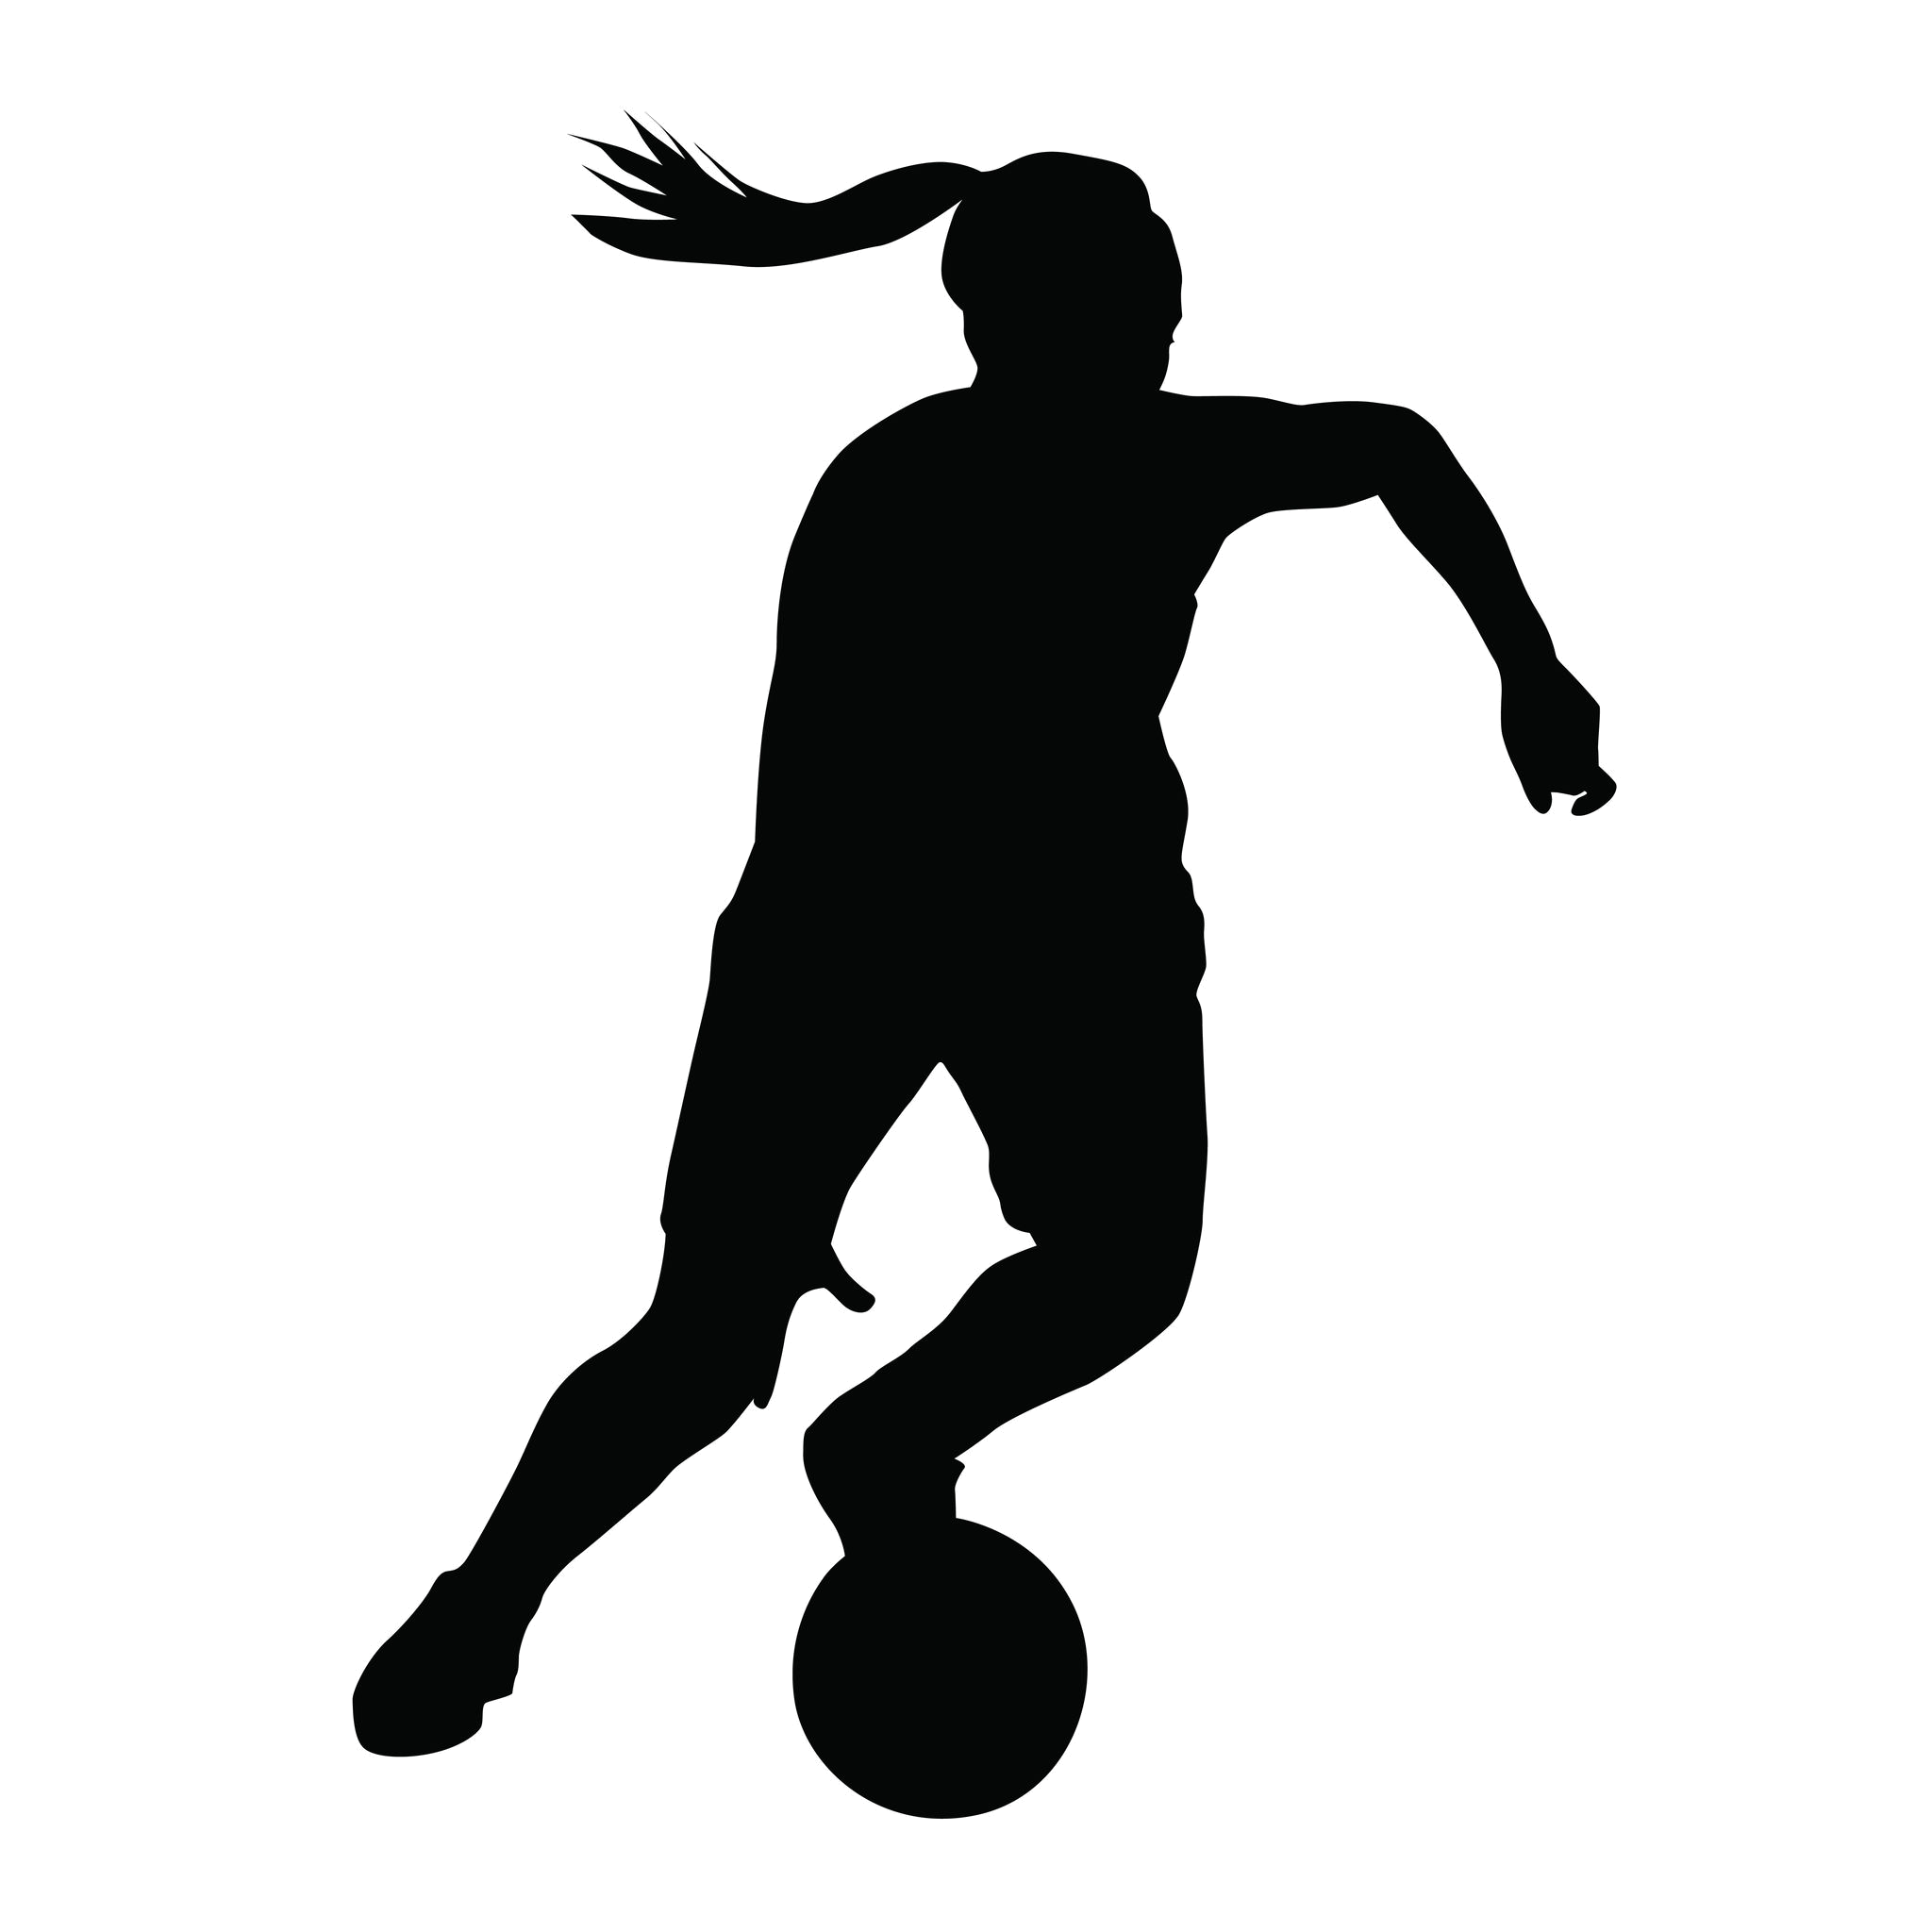 Girls Playing Soccer Silhouette Vector Soccer Silhouette Girl Playing Soccer Football Silhouette